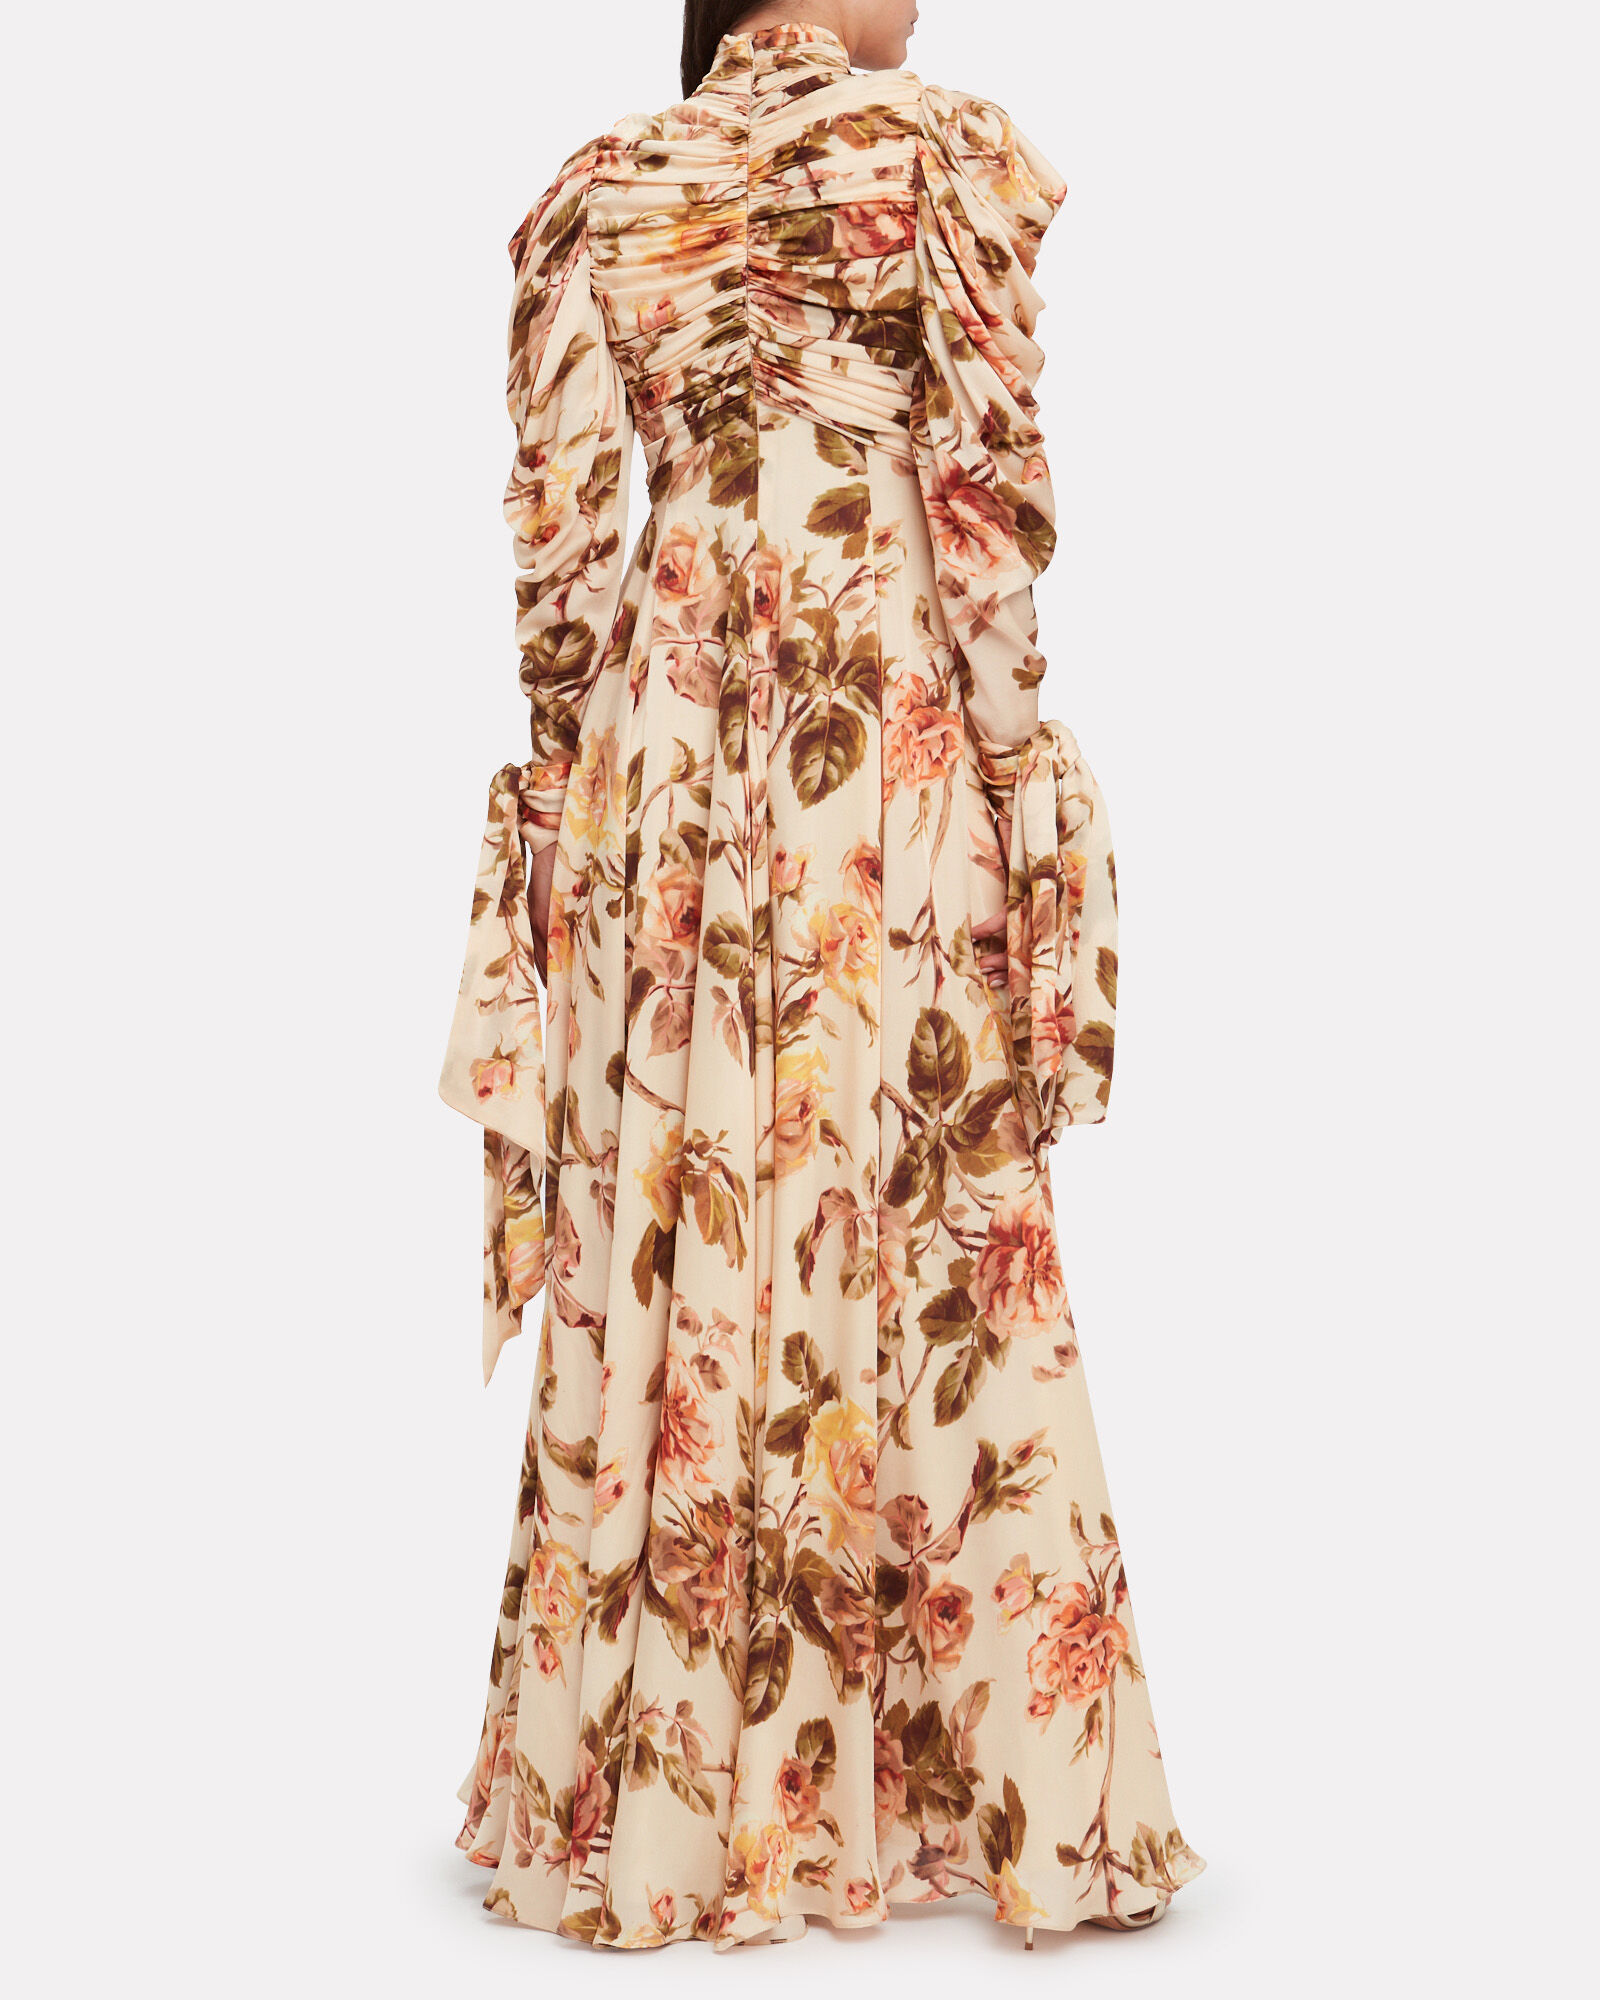 Resistance Ruched Silk Floral Dress, MULTI, hi-res